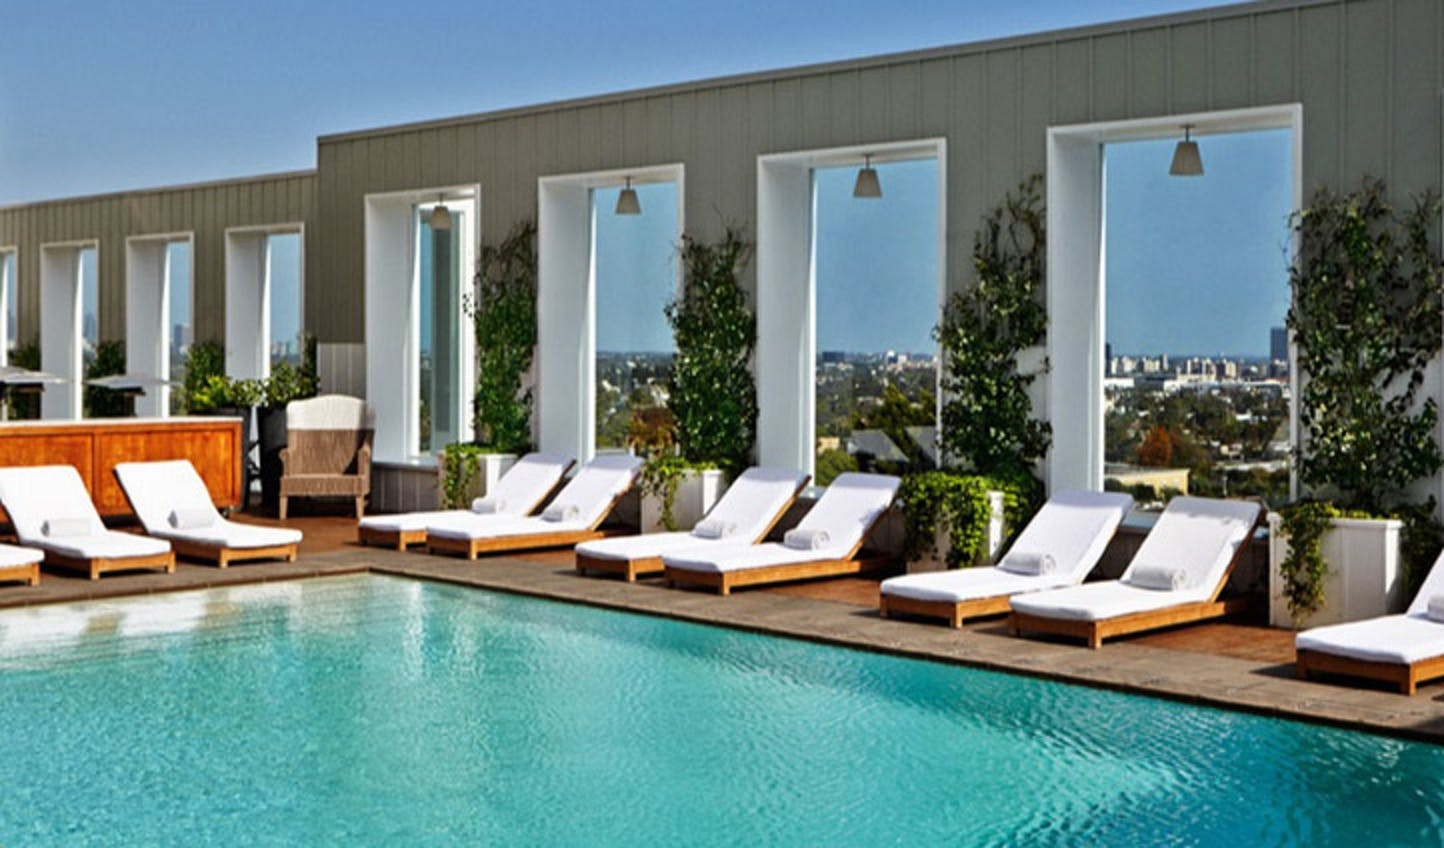 The stunning pool at the Mondrian